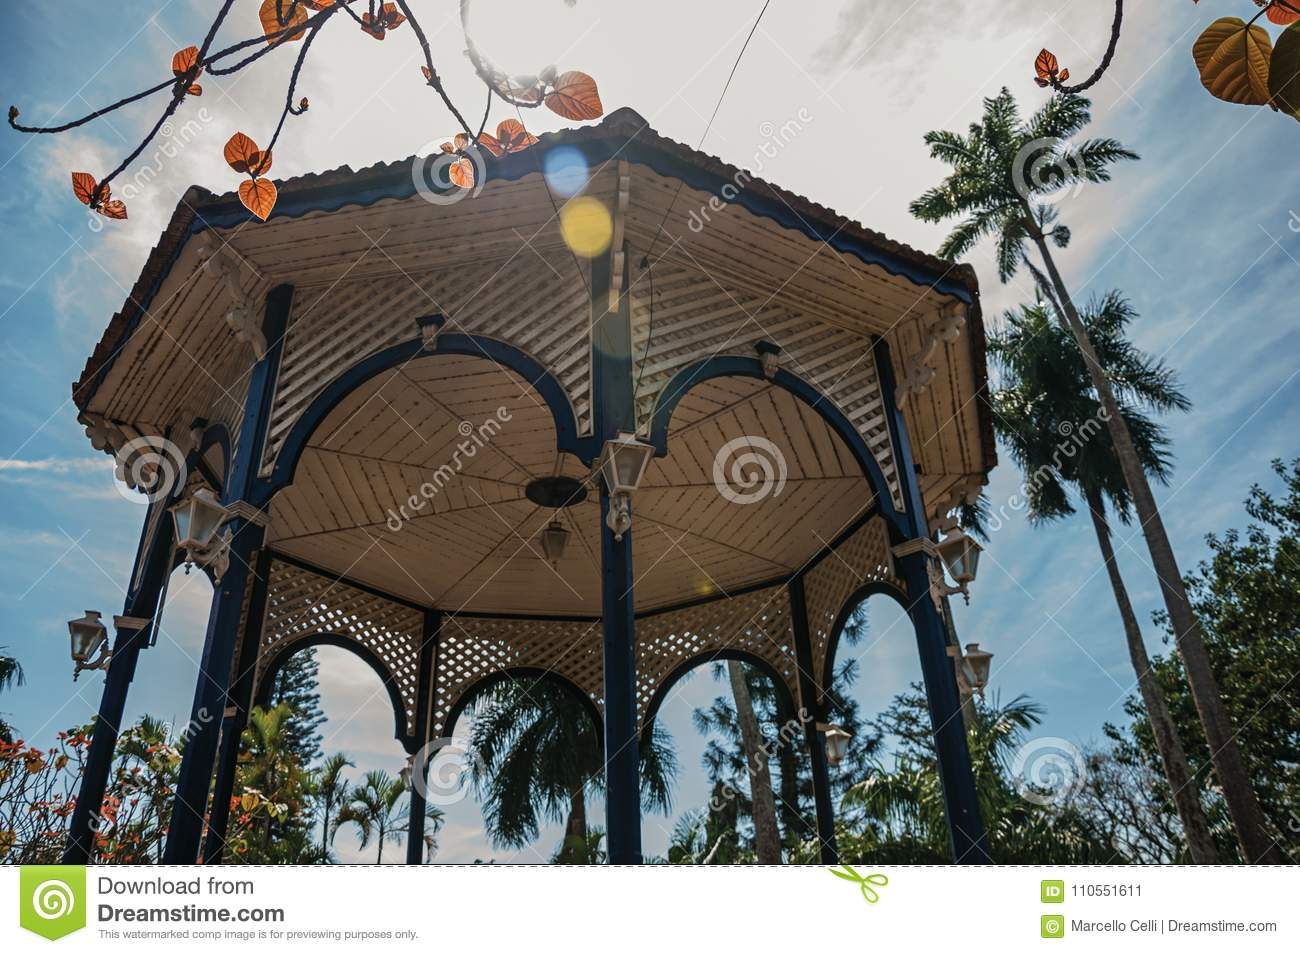 Close-up of colorful gazebo ceiling in the middle of garden full of trees, in a bright sunny day at São Manuel.